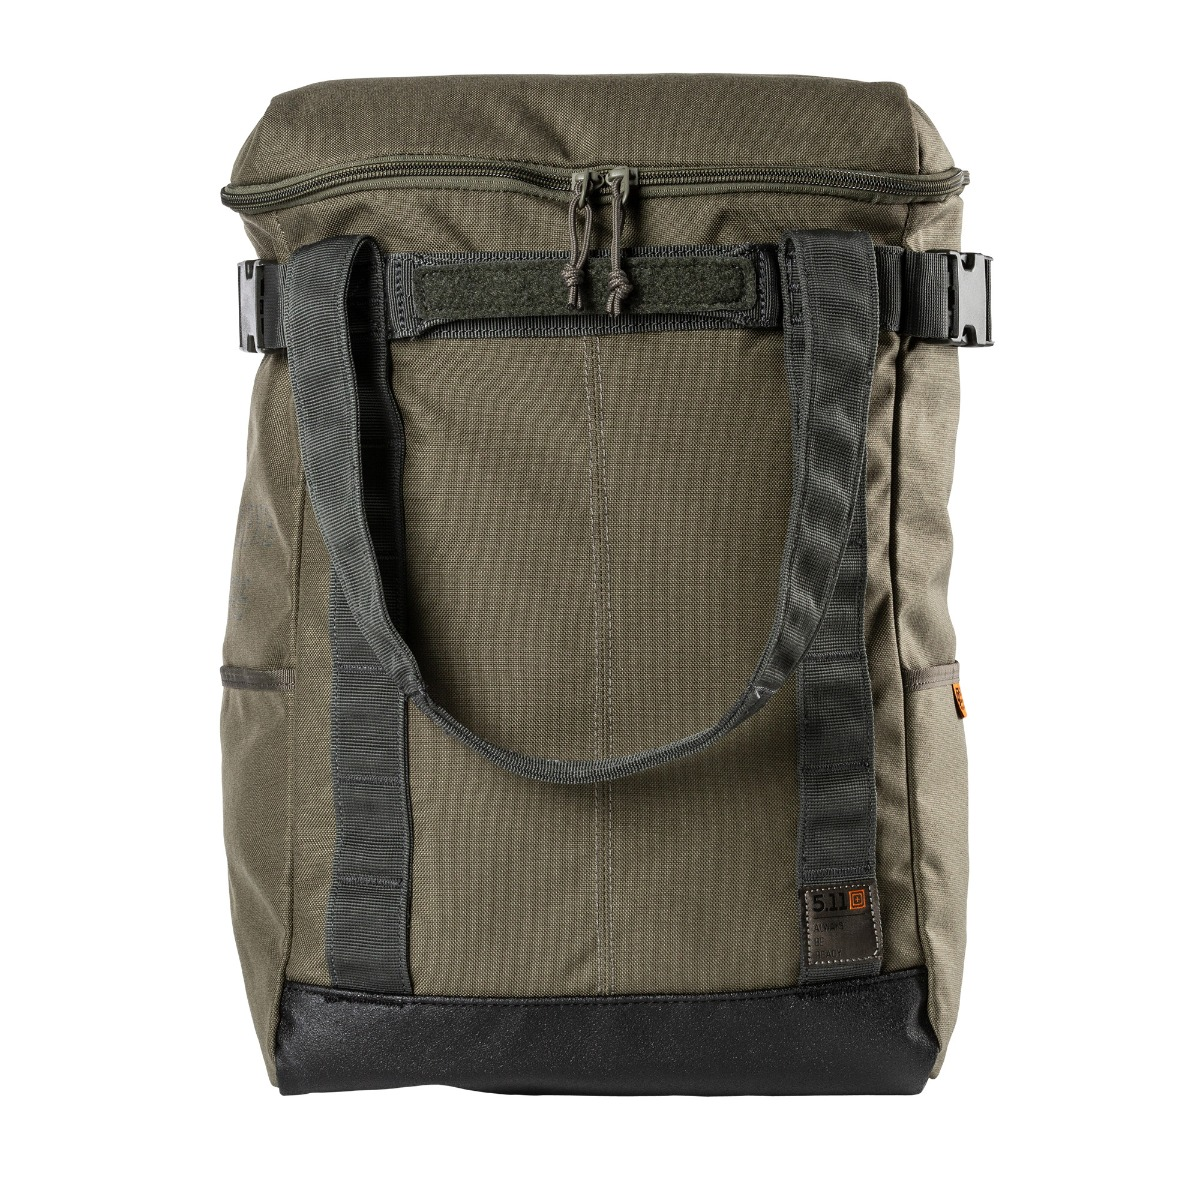 Balo 5.11 Tactical LOAD READY HAUL PACK 35L